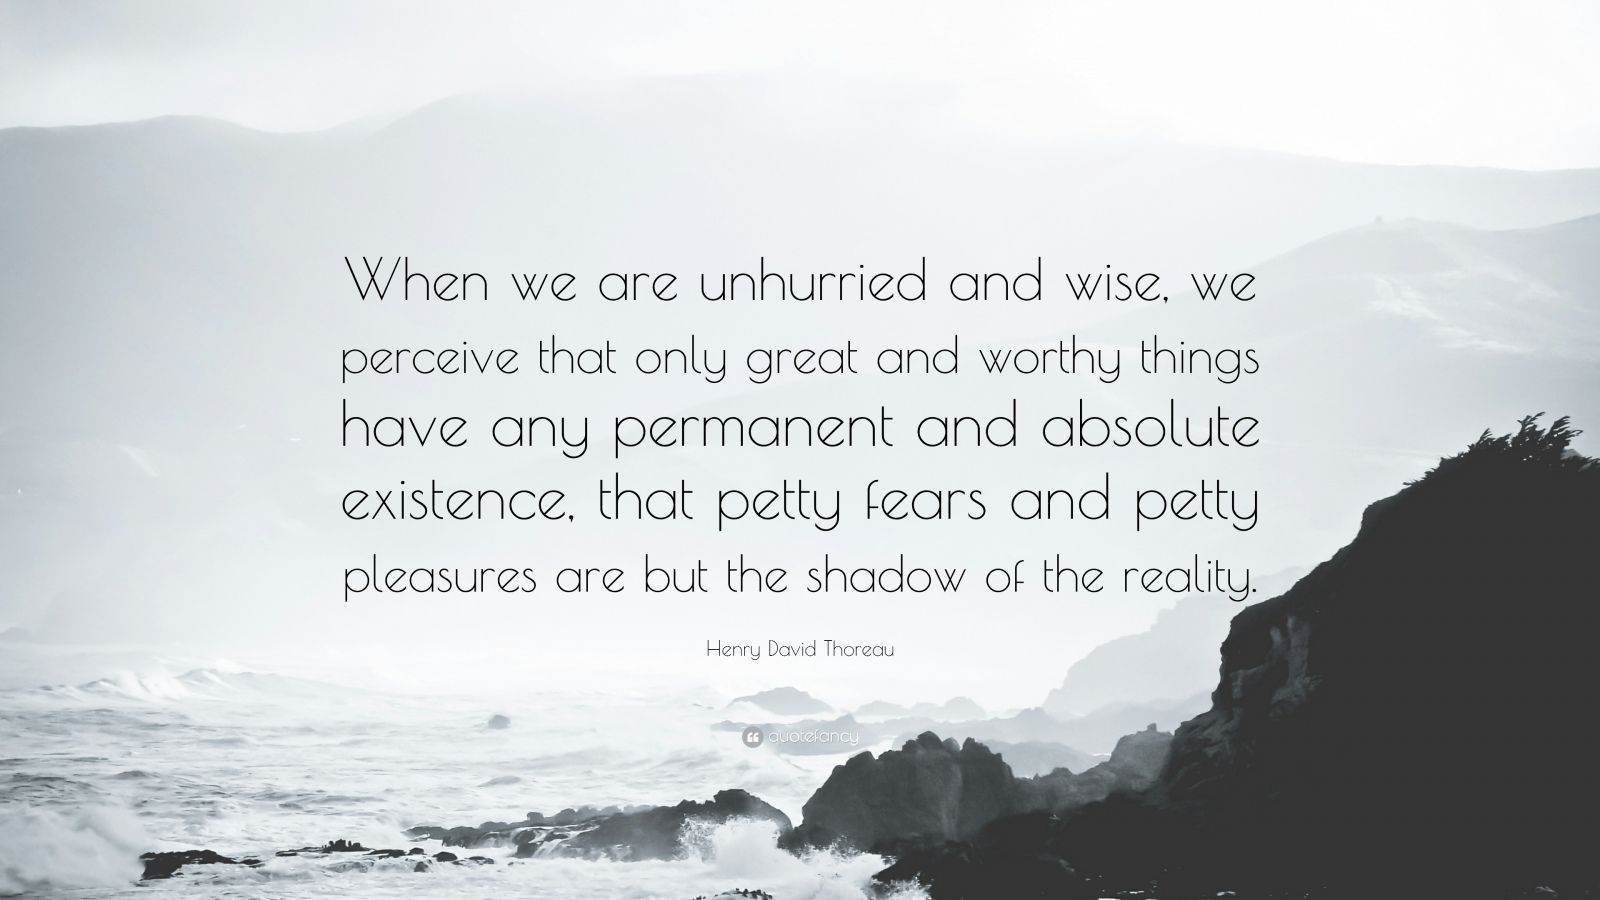 """Henry David Thoreau Quote: """"When we are unhurried and wise, we perceive that only great and worthy things have any permanent and absolute existence, that petty fears and petty pleasures are but the shadow of the reality."""""""